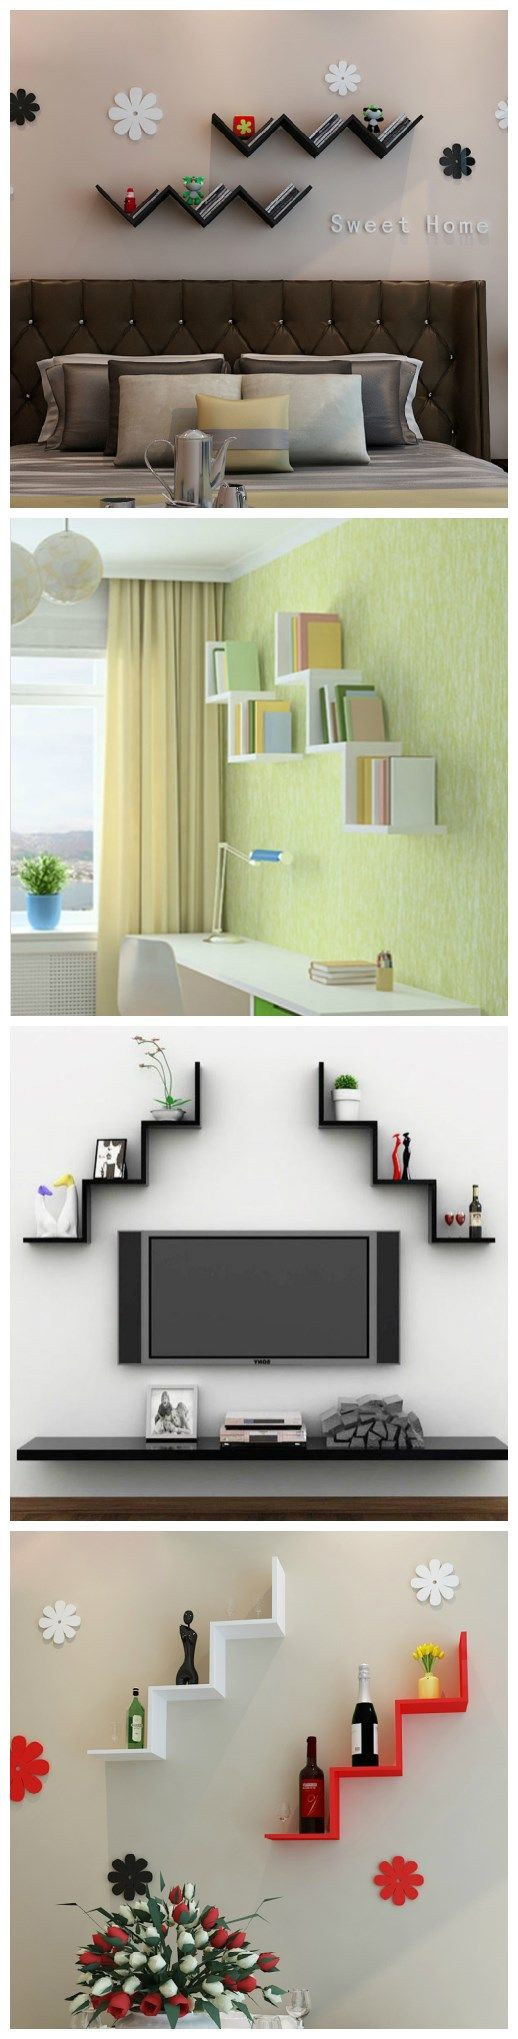 Wowwww....This W shaped floating wall shelves are perfect for any room of my home, including kitchen, bedroom and living areas | links: http://www.zosomart.com/home-living/home-accessories/w-shaped-floating-wall-shelf.html